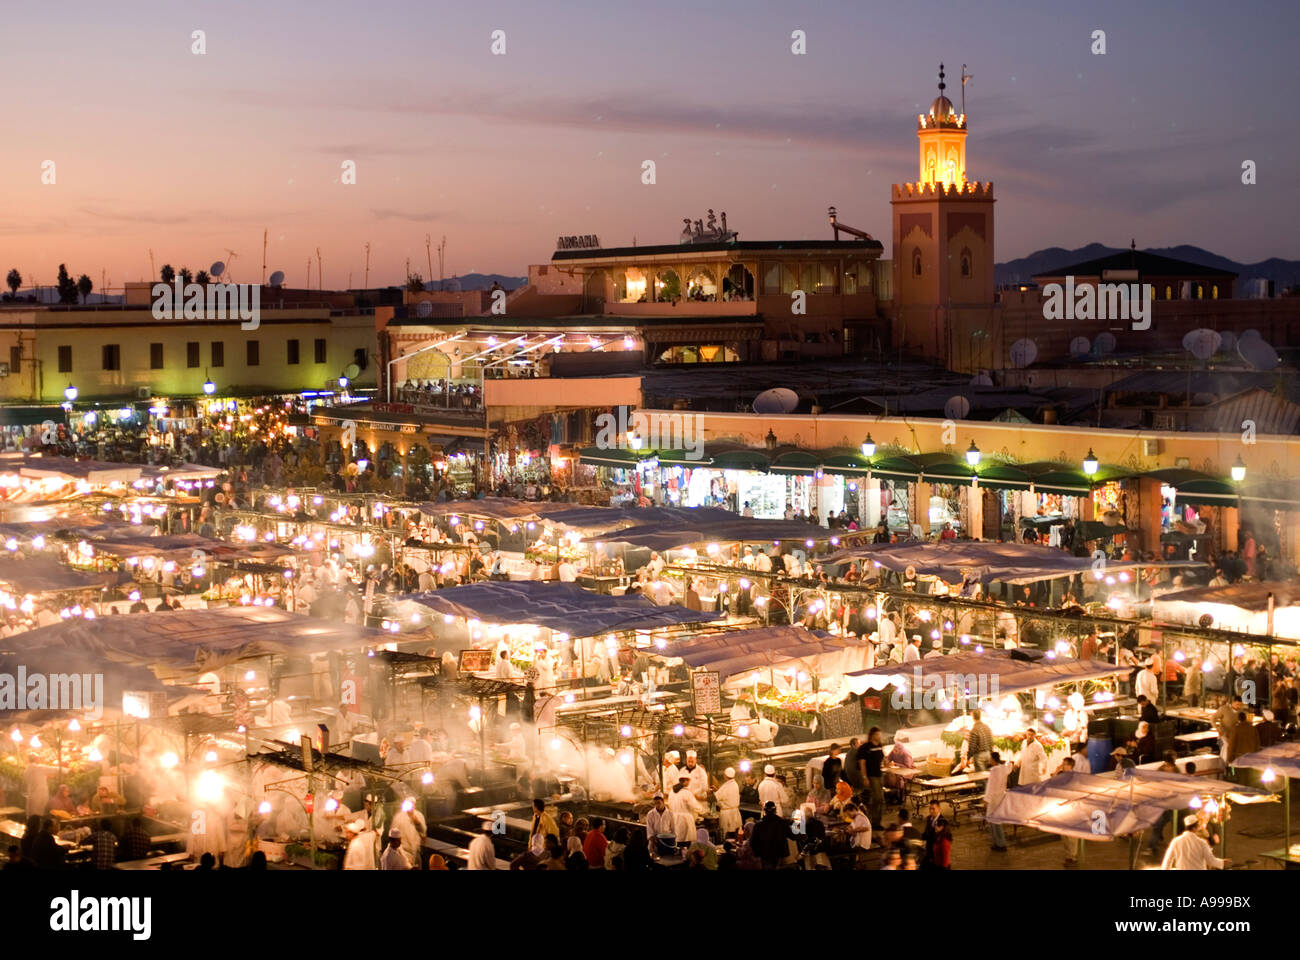 Aerial view over the open air food stalls in the central square of Djemaa El Fna in Marrakesh Morocco Stock Photo